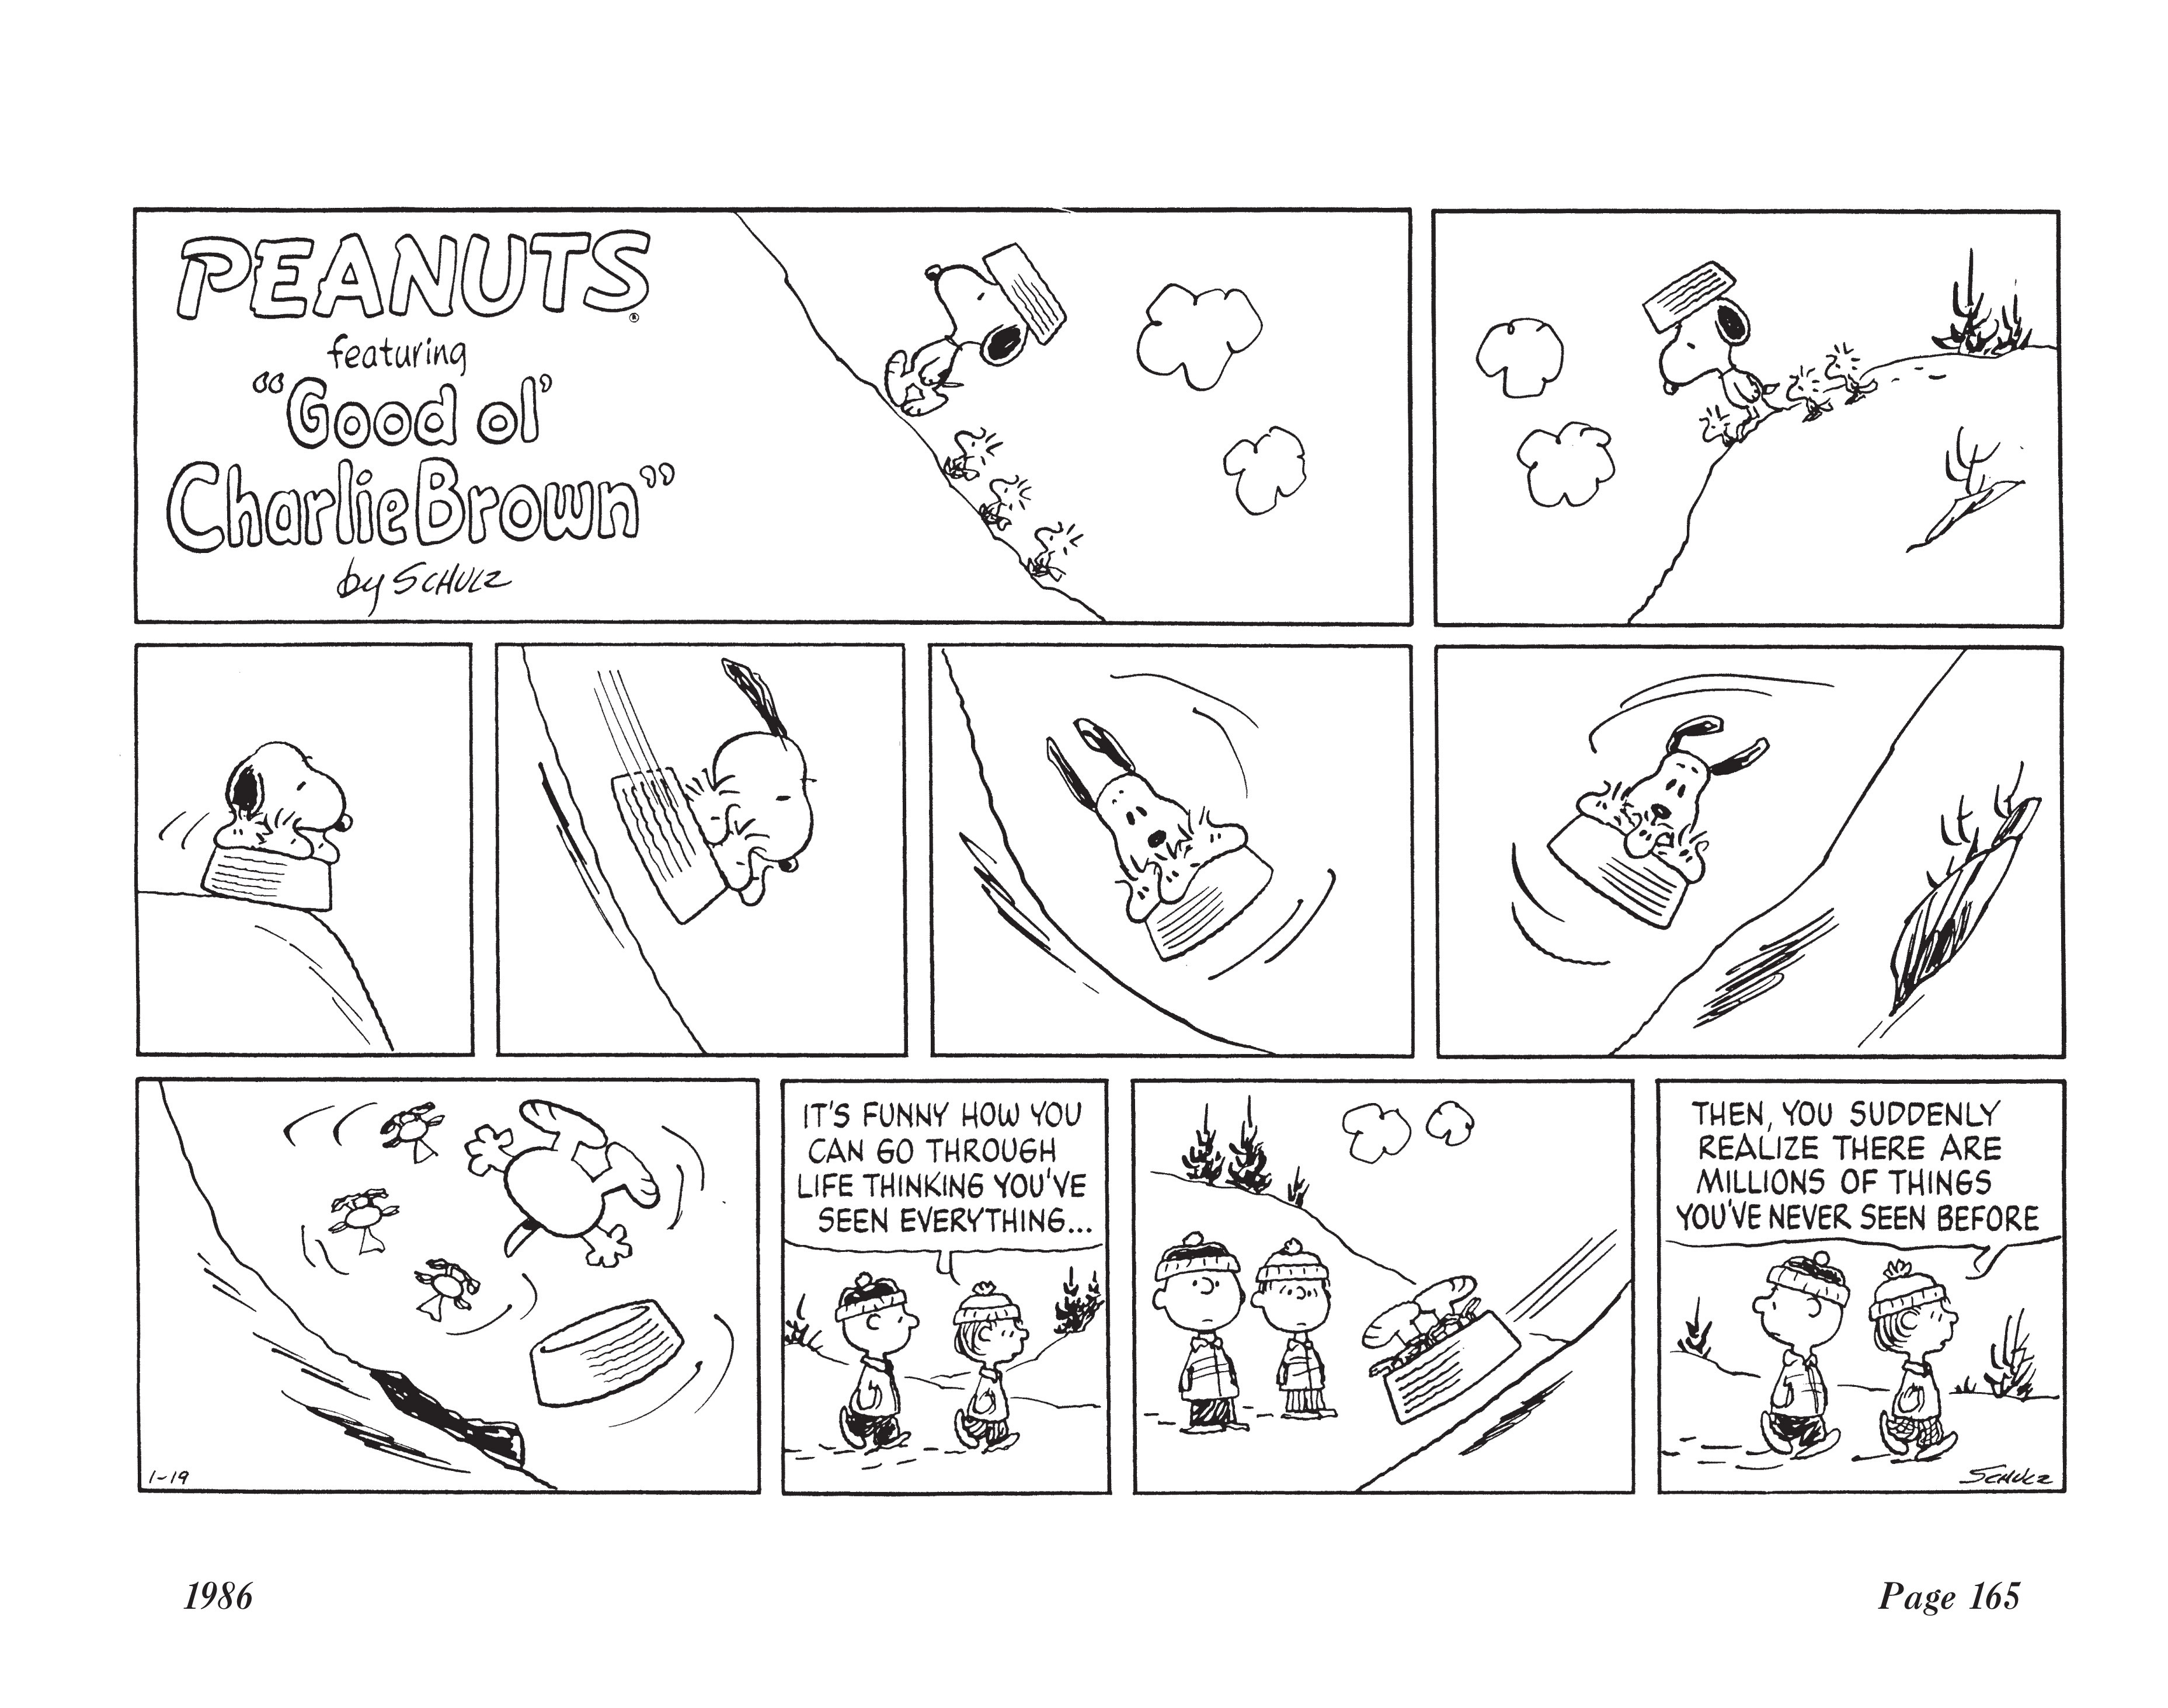 Complete Peanuts 1985 review